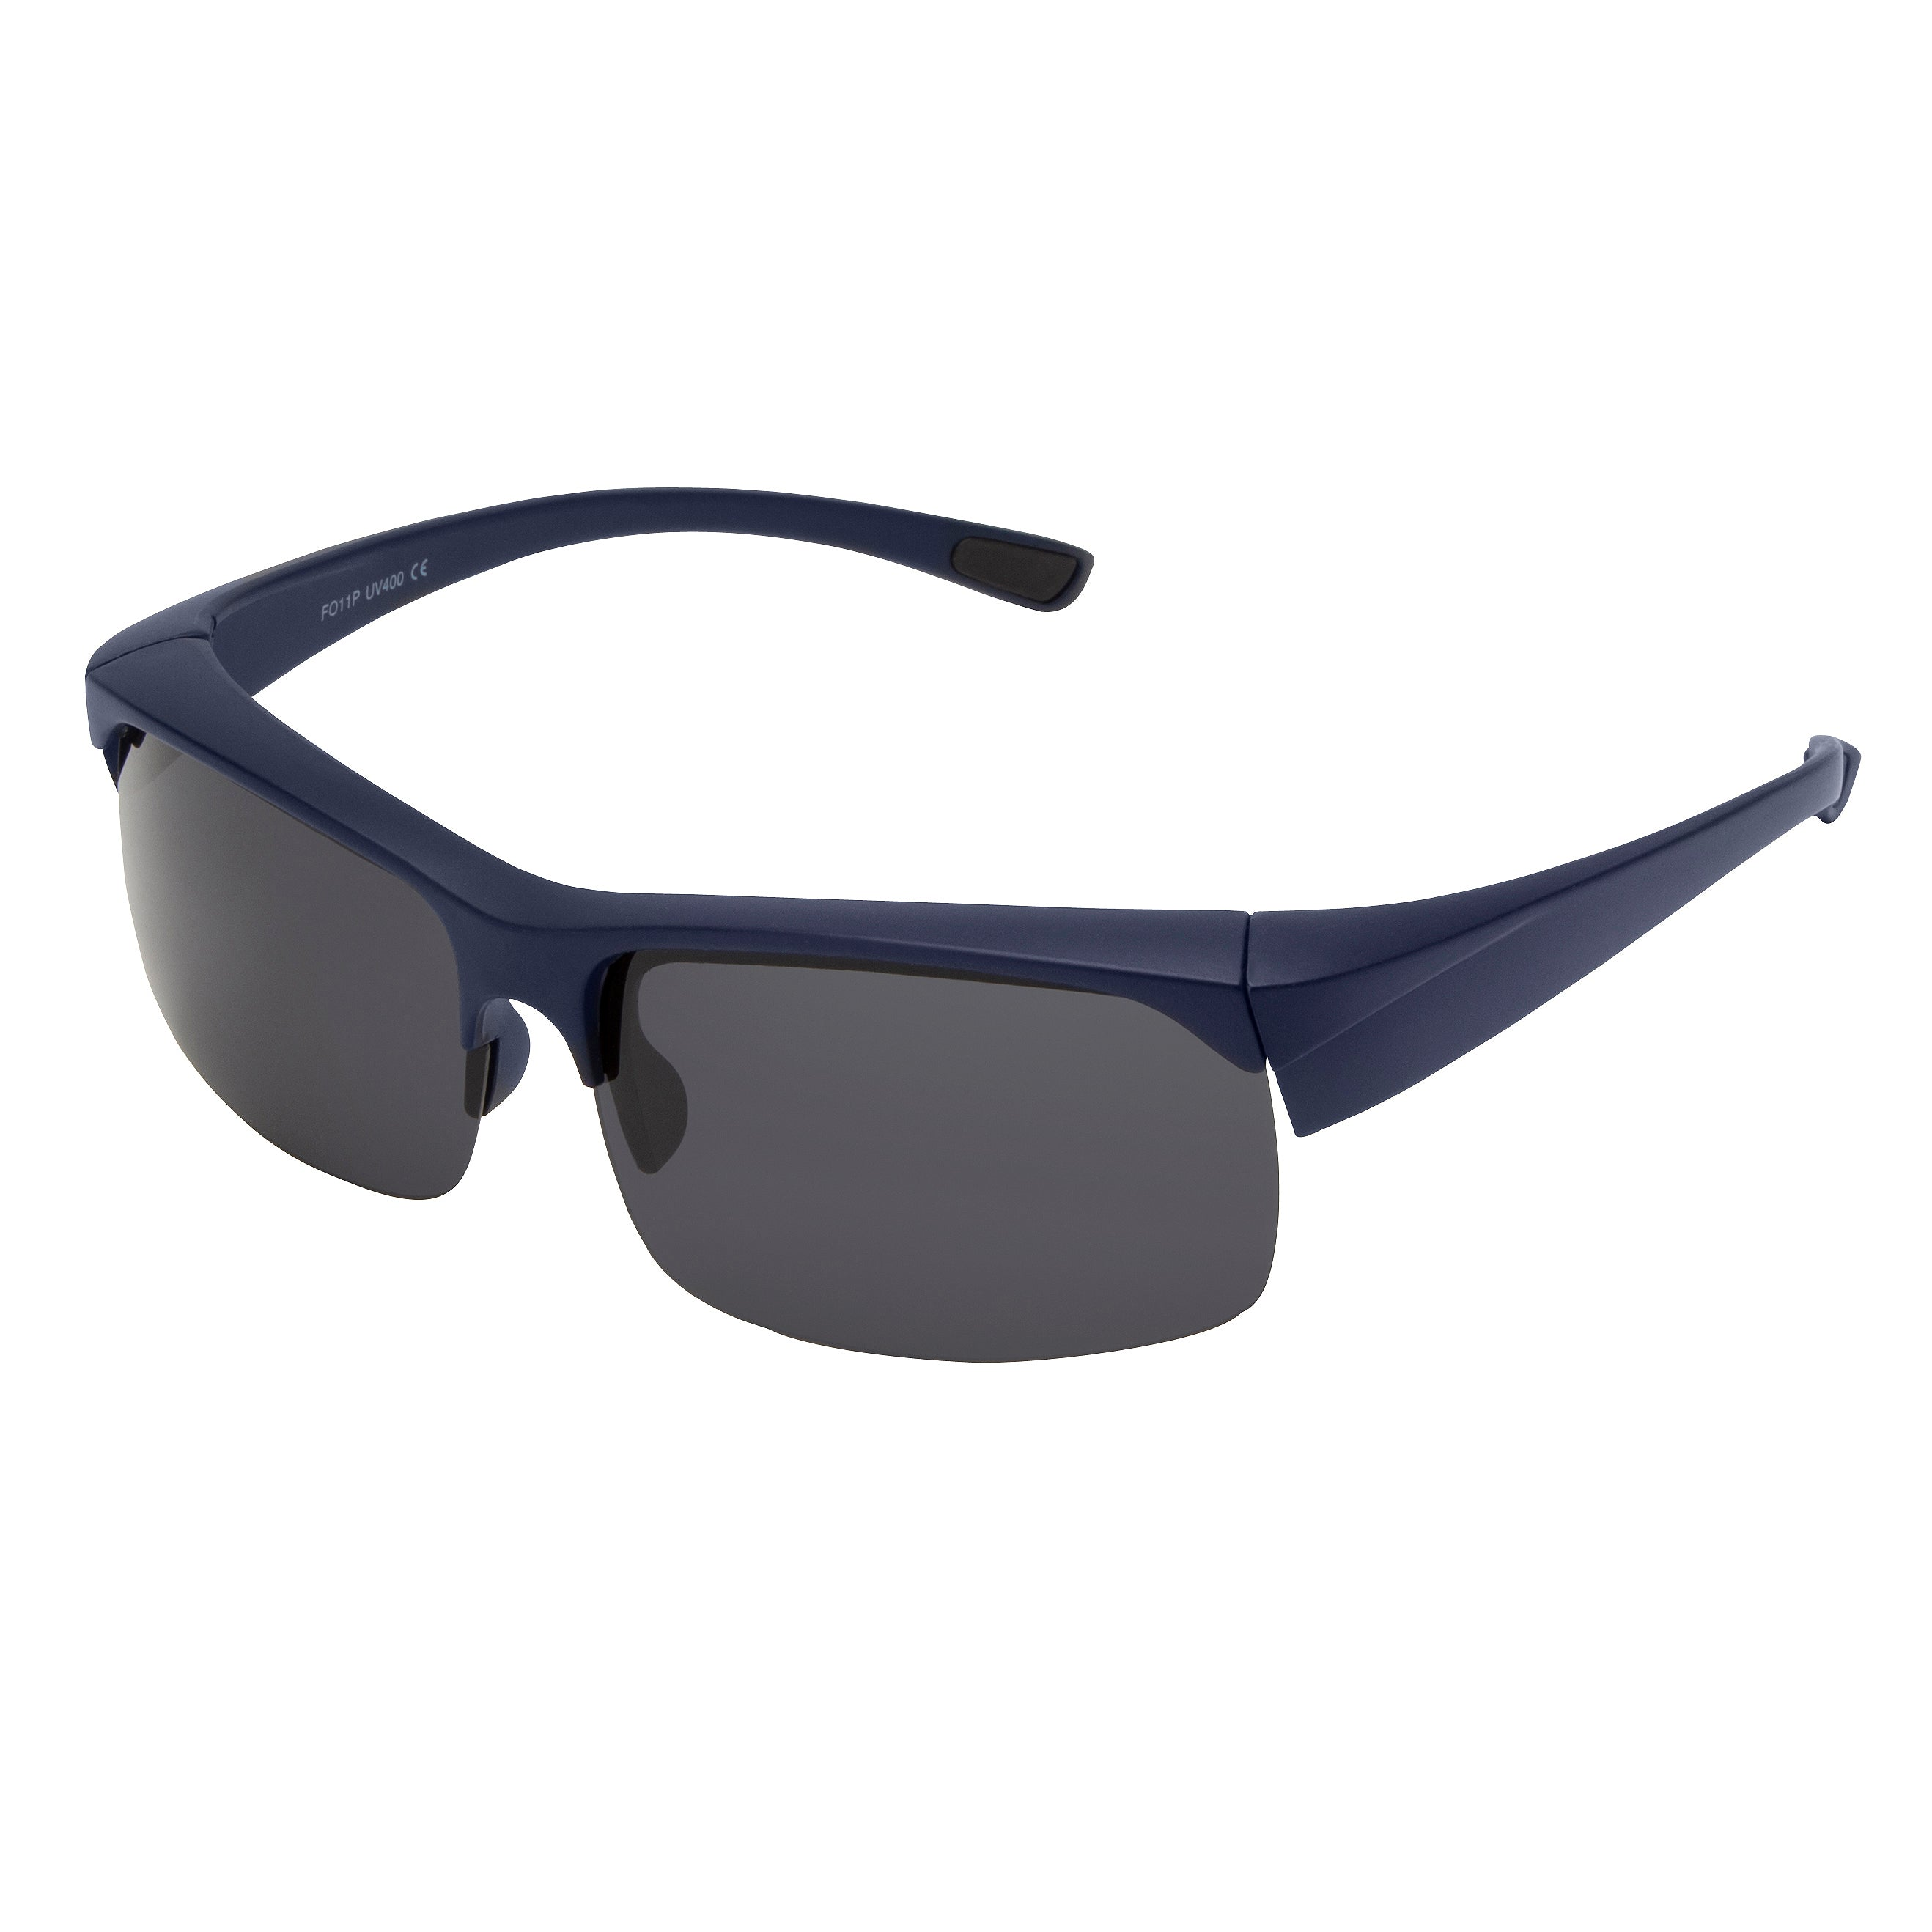 FO11P - Polarized Shaded Sunglasses - Fit Over Eyewear